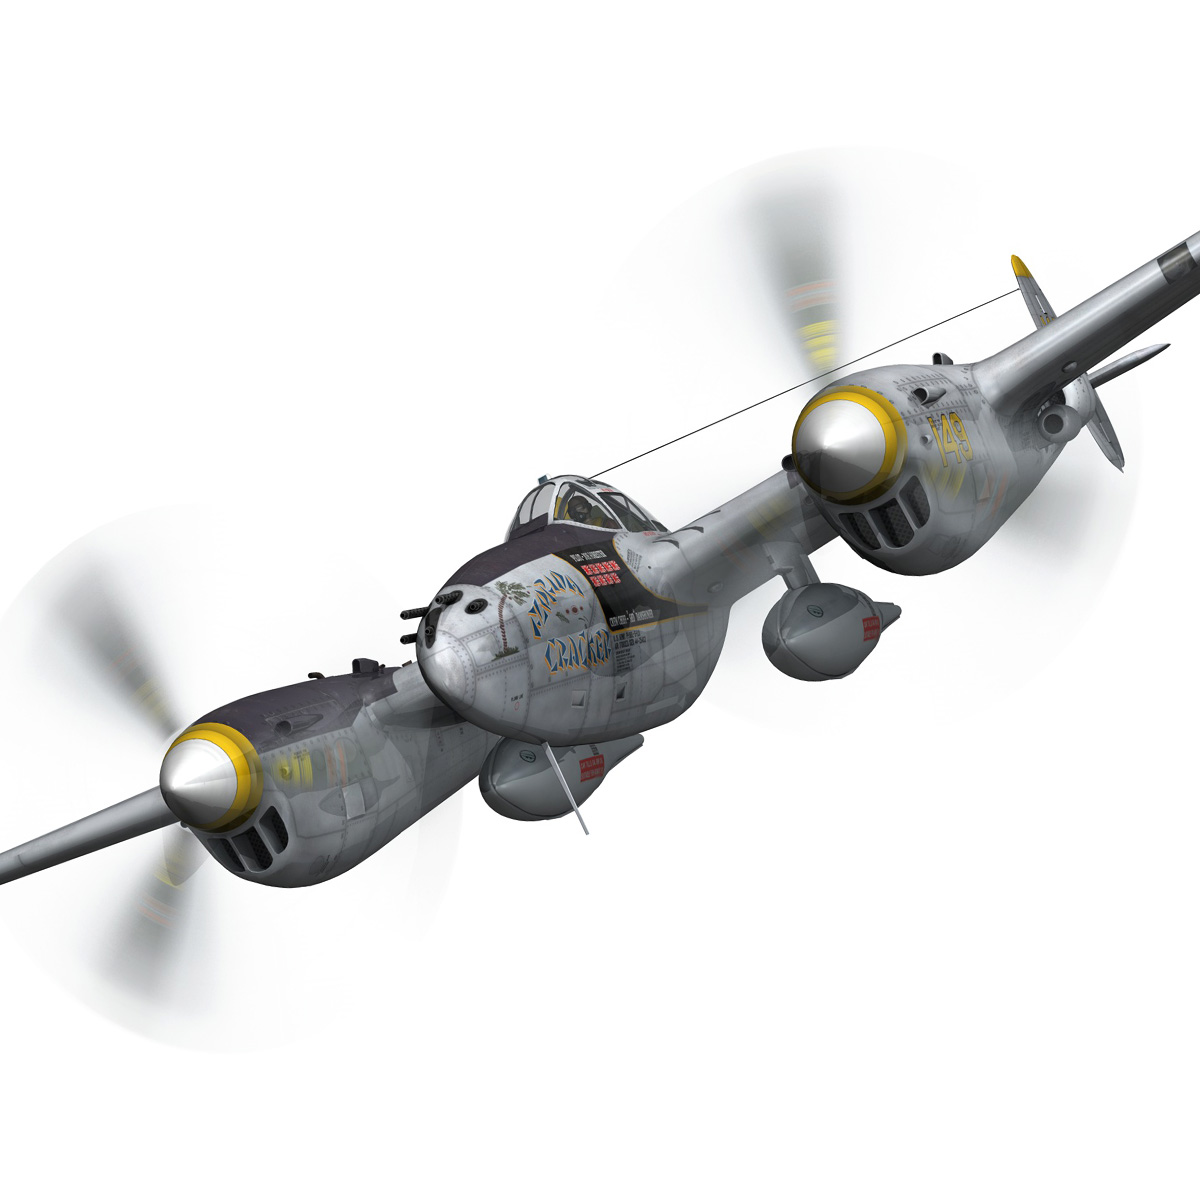 lockheed p-38 lightning – florida cracker 3d model fbx c4d lwo obj 279421